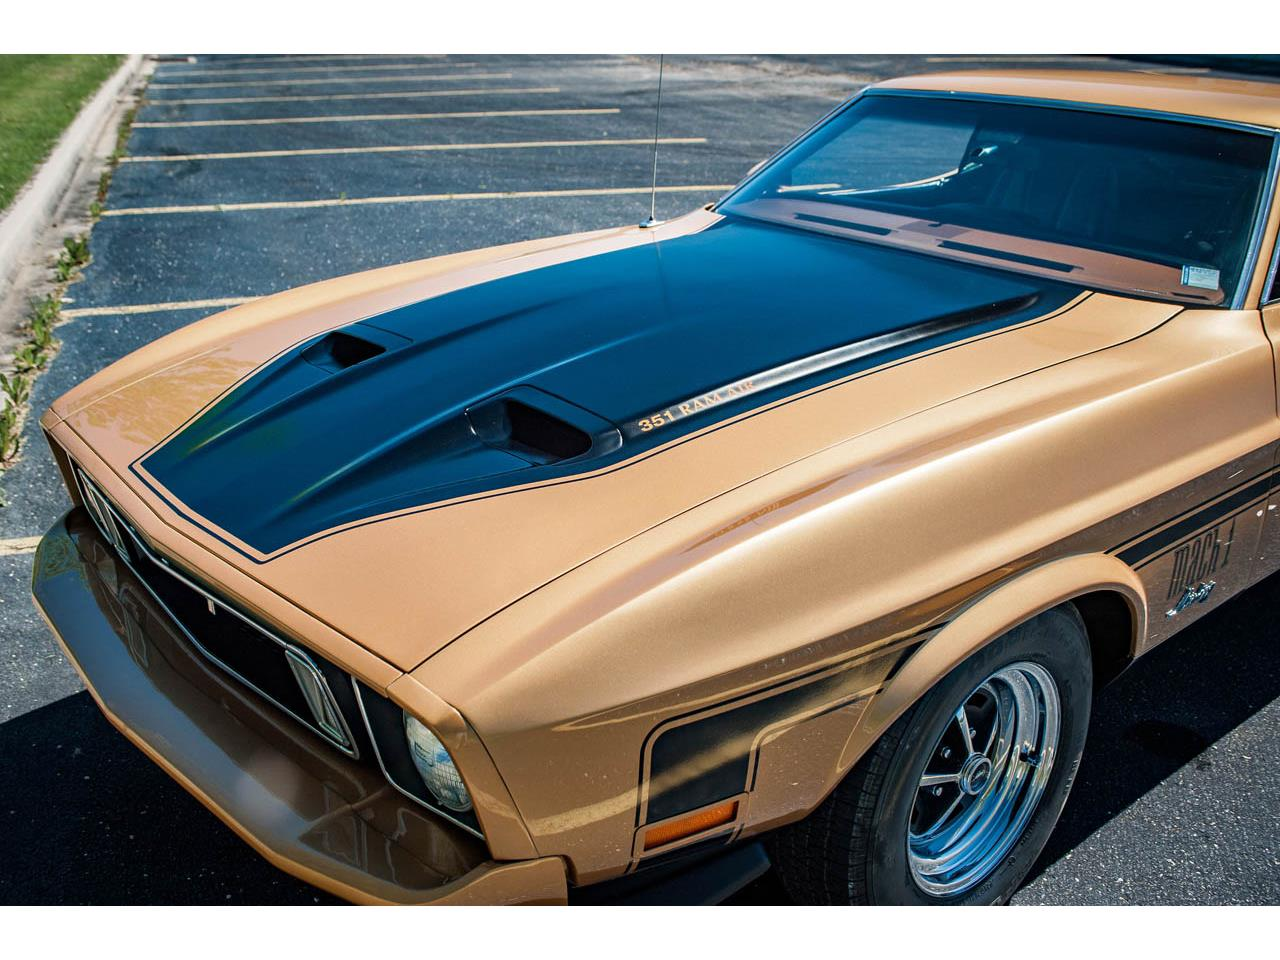 Large Picture of Classic '73 Mustang located in O'Fallon Illinois - $34,500.00 - QB8T